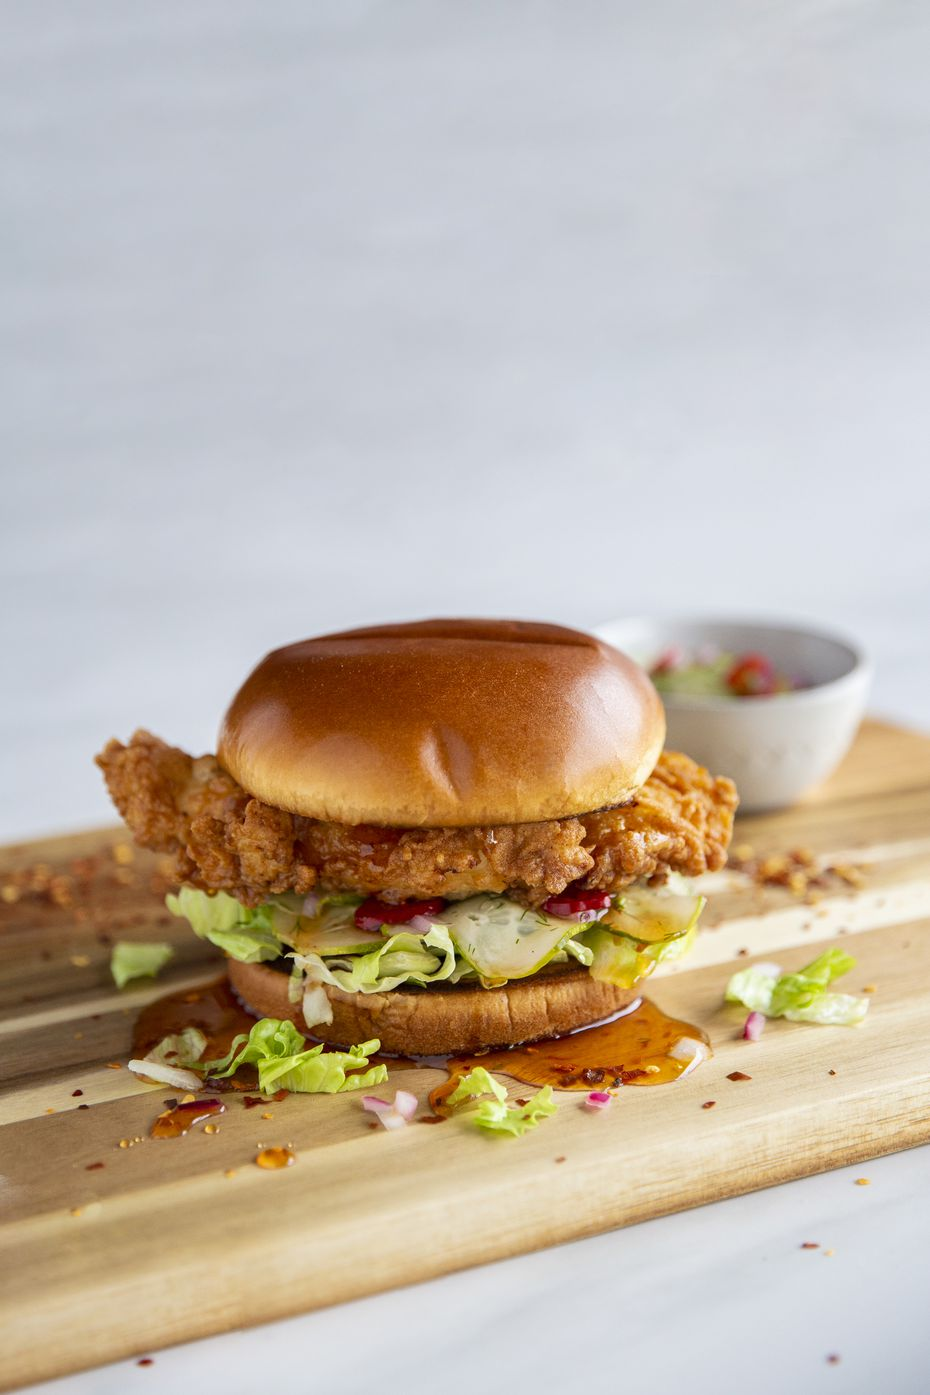 Rachael Ray's Uber Eats menu ranges from sides like sweet 'n spicy pickles to plates of pasta and sandwiches. Pictured is her fried chicken sandwich.